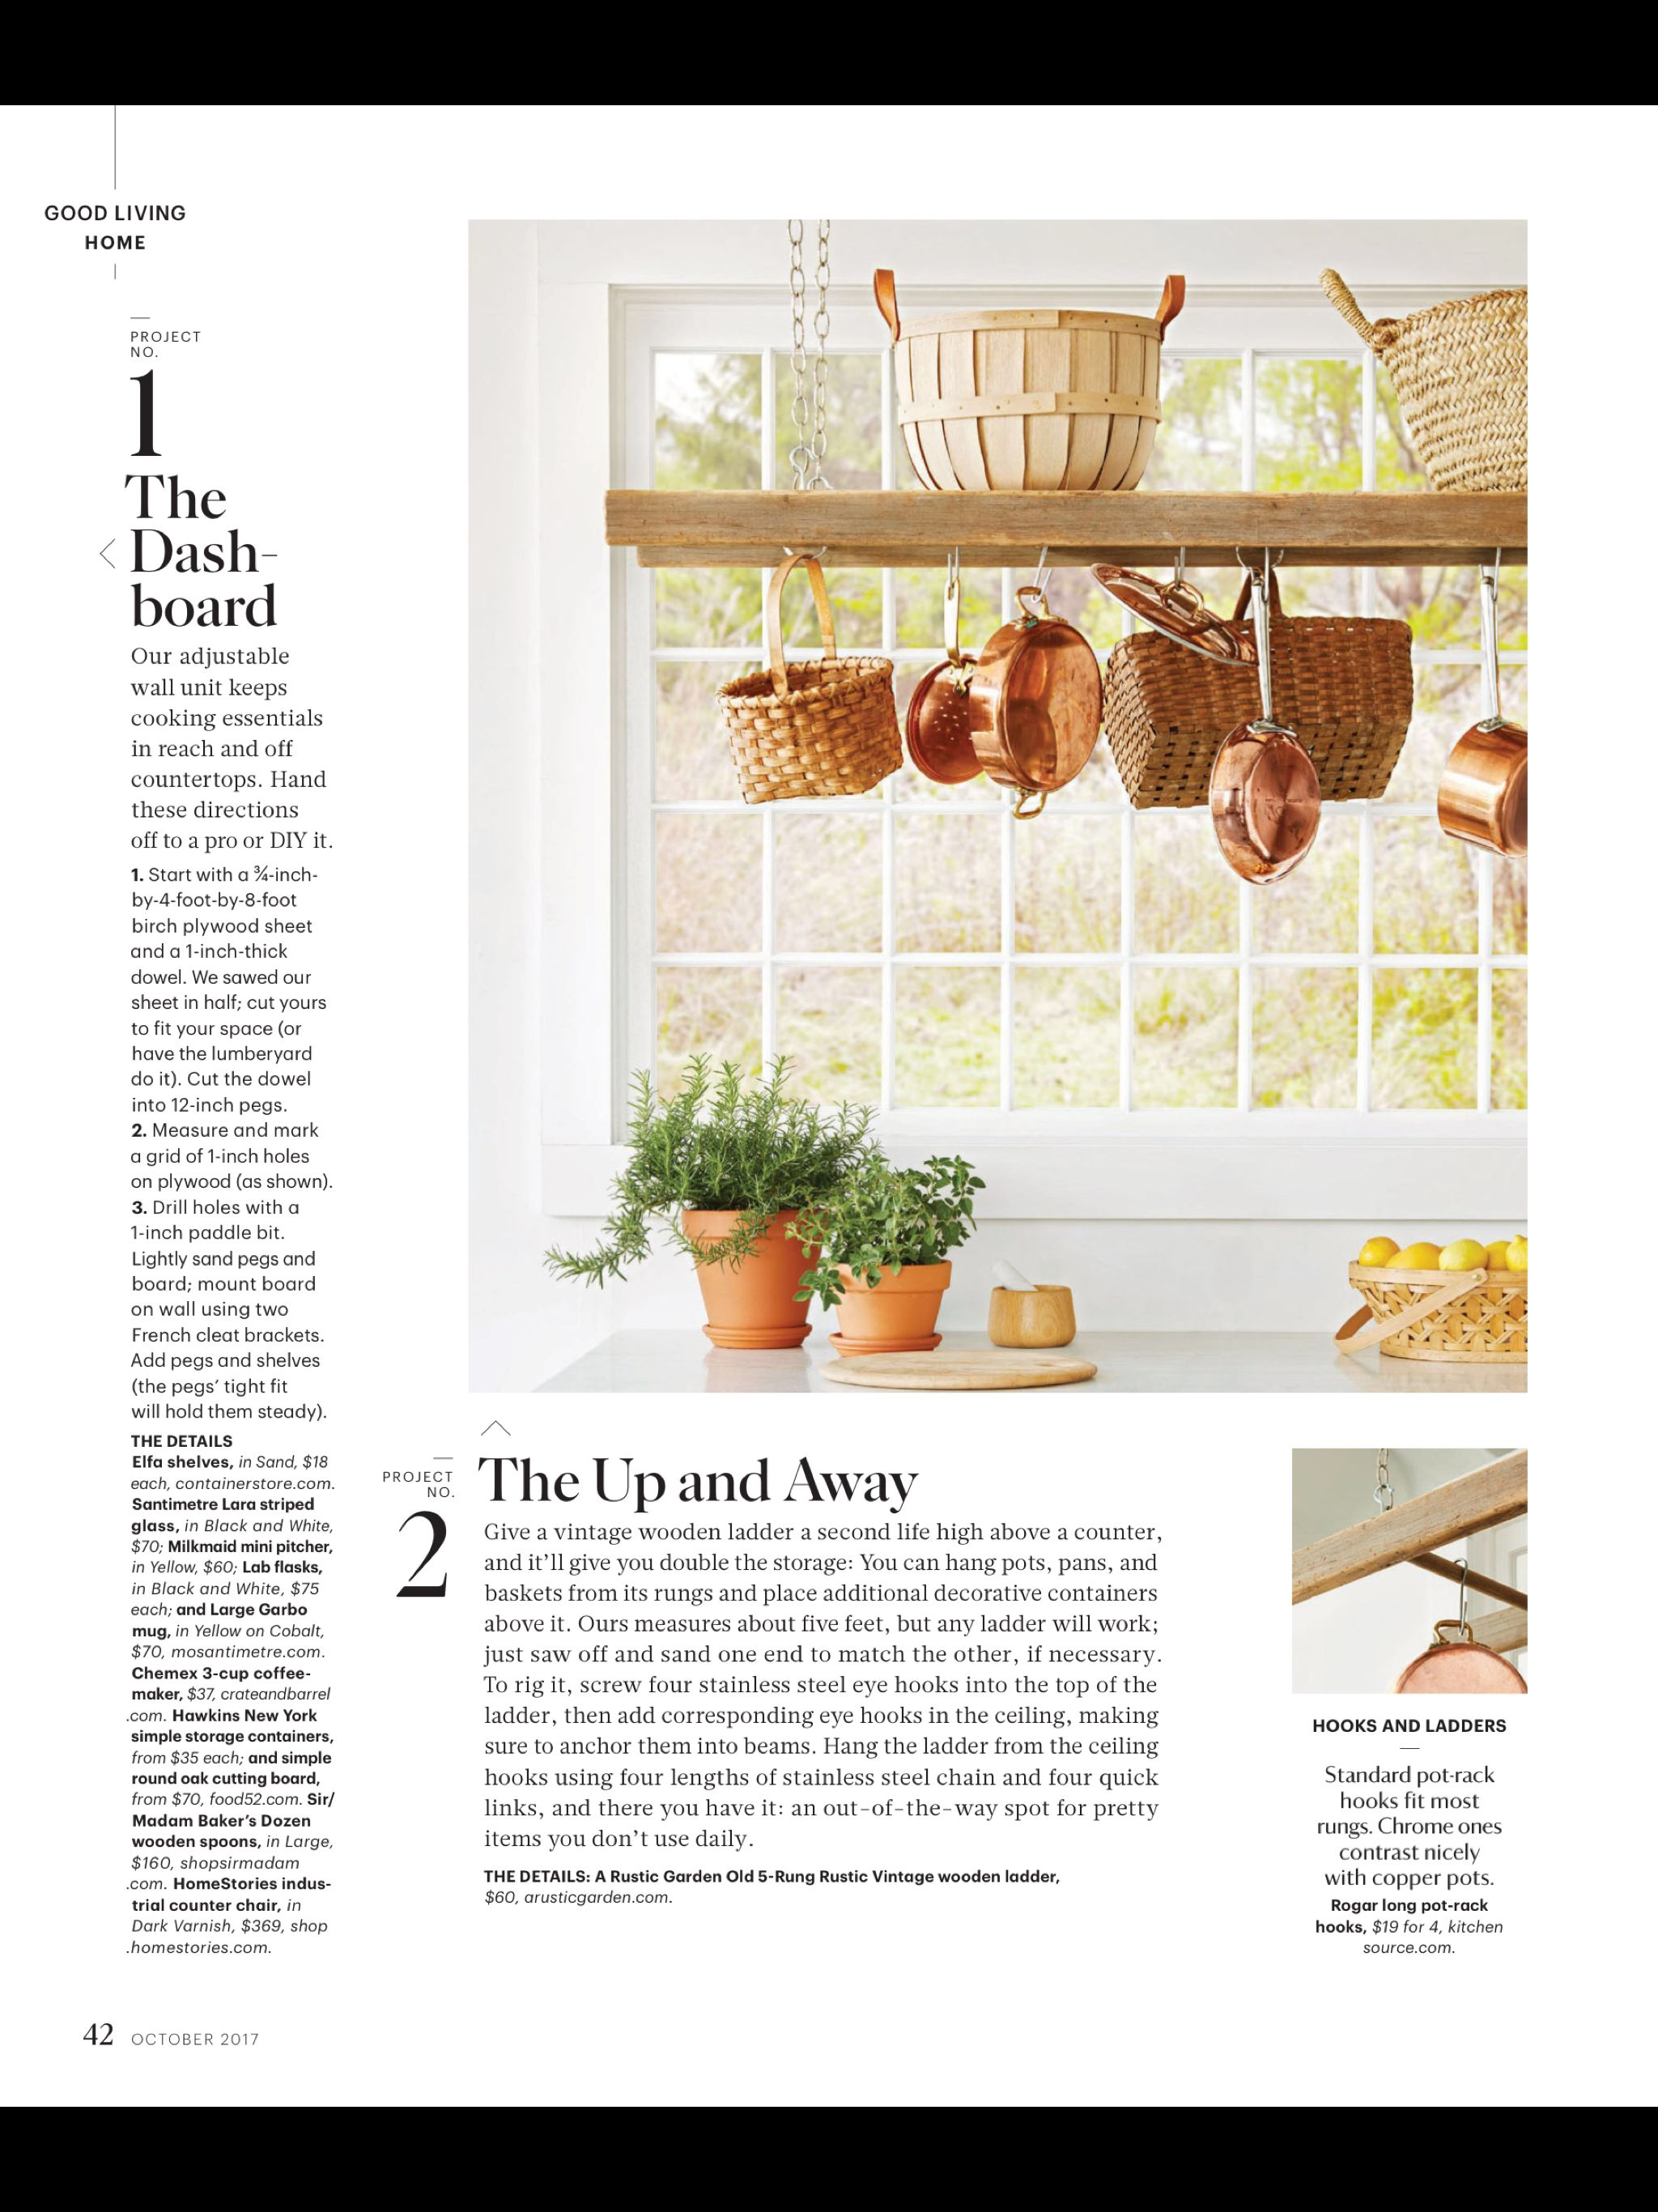 «The Well-Kept: Space Savers» de Martha Stewart Living, octobre 2017. Lisez-le sur l'appli Texture, qui vous donne accès à plus de 200 magazines de grande qualité.